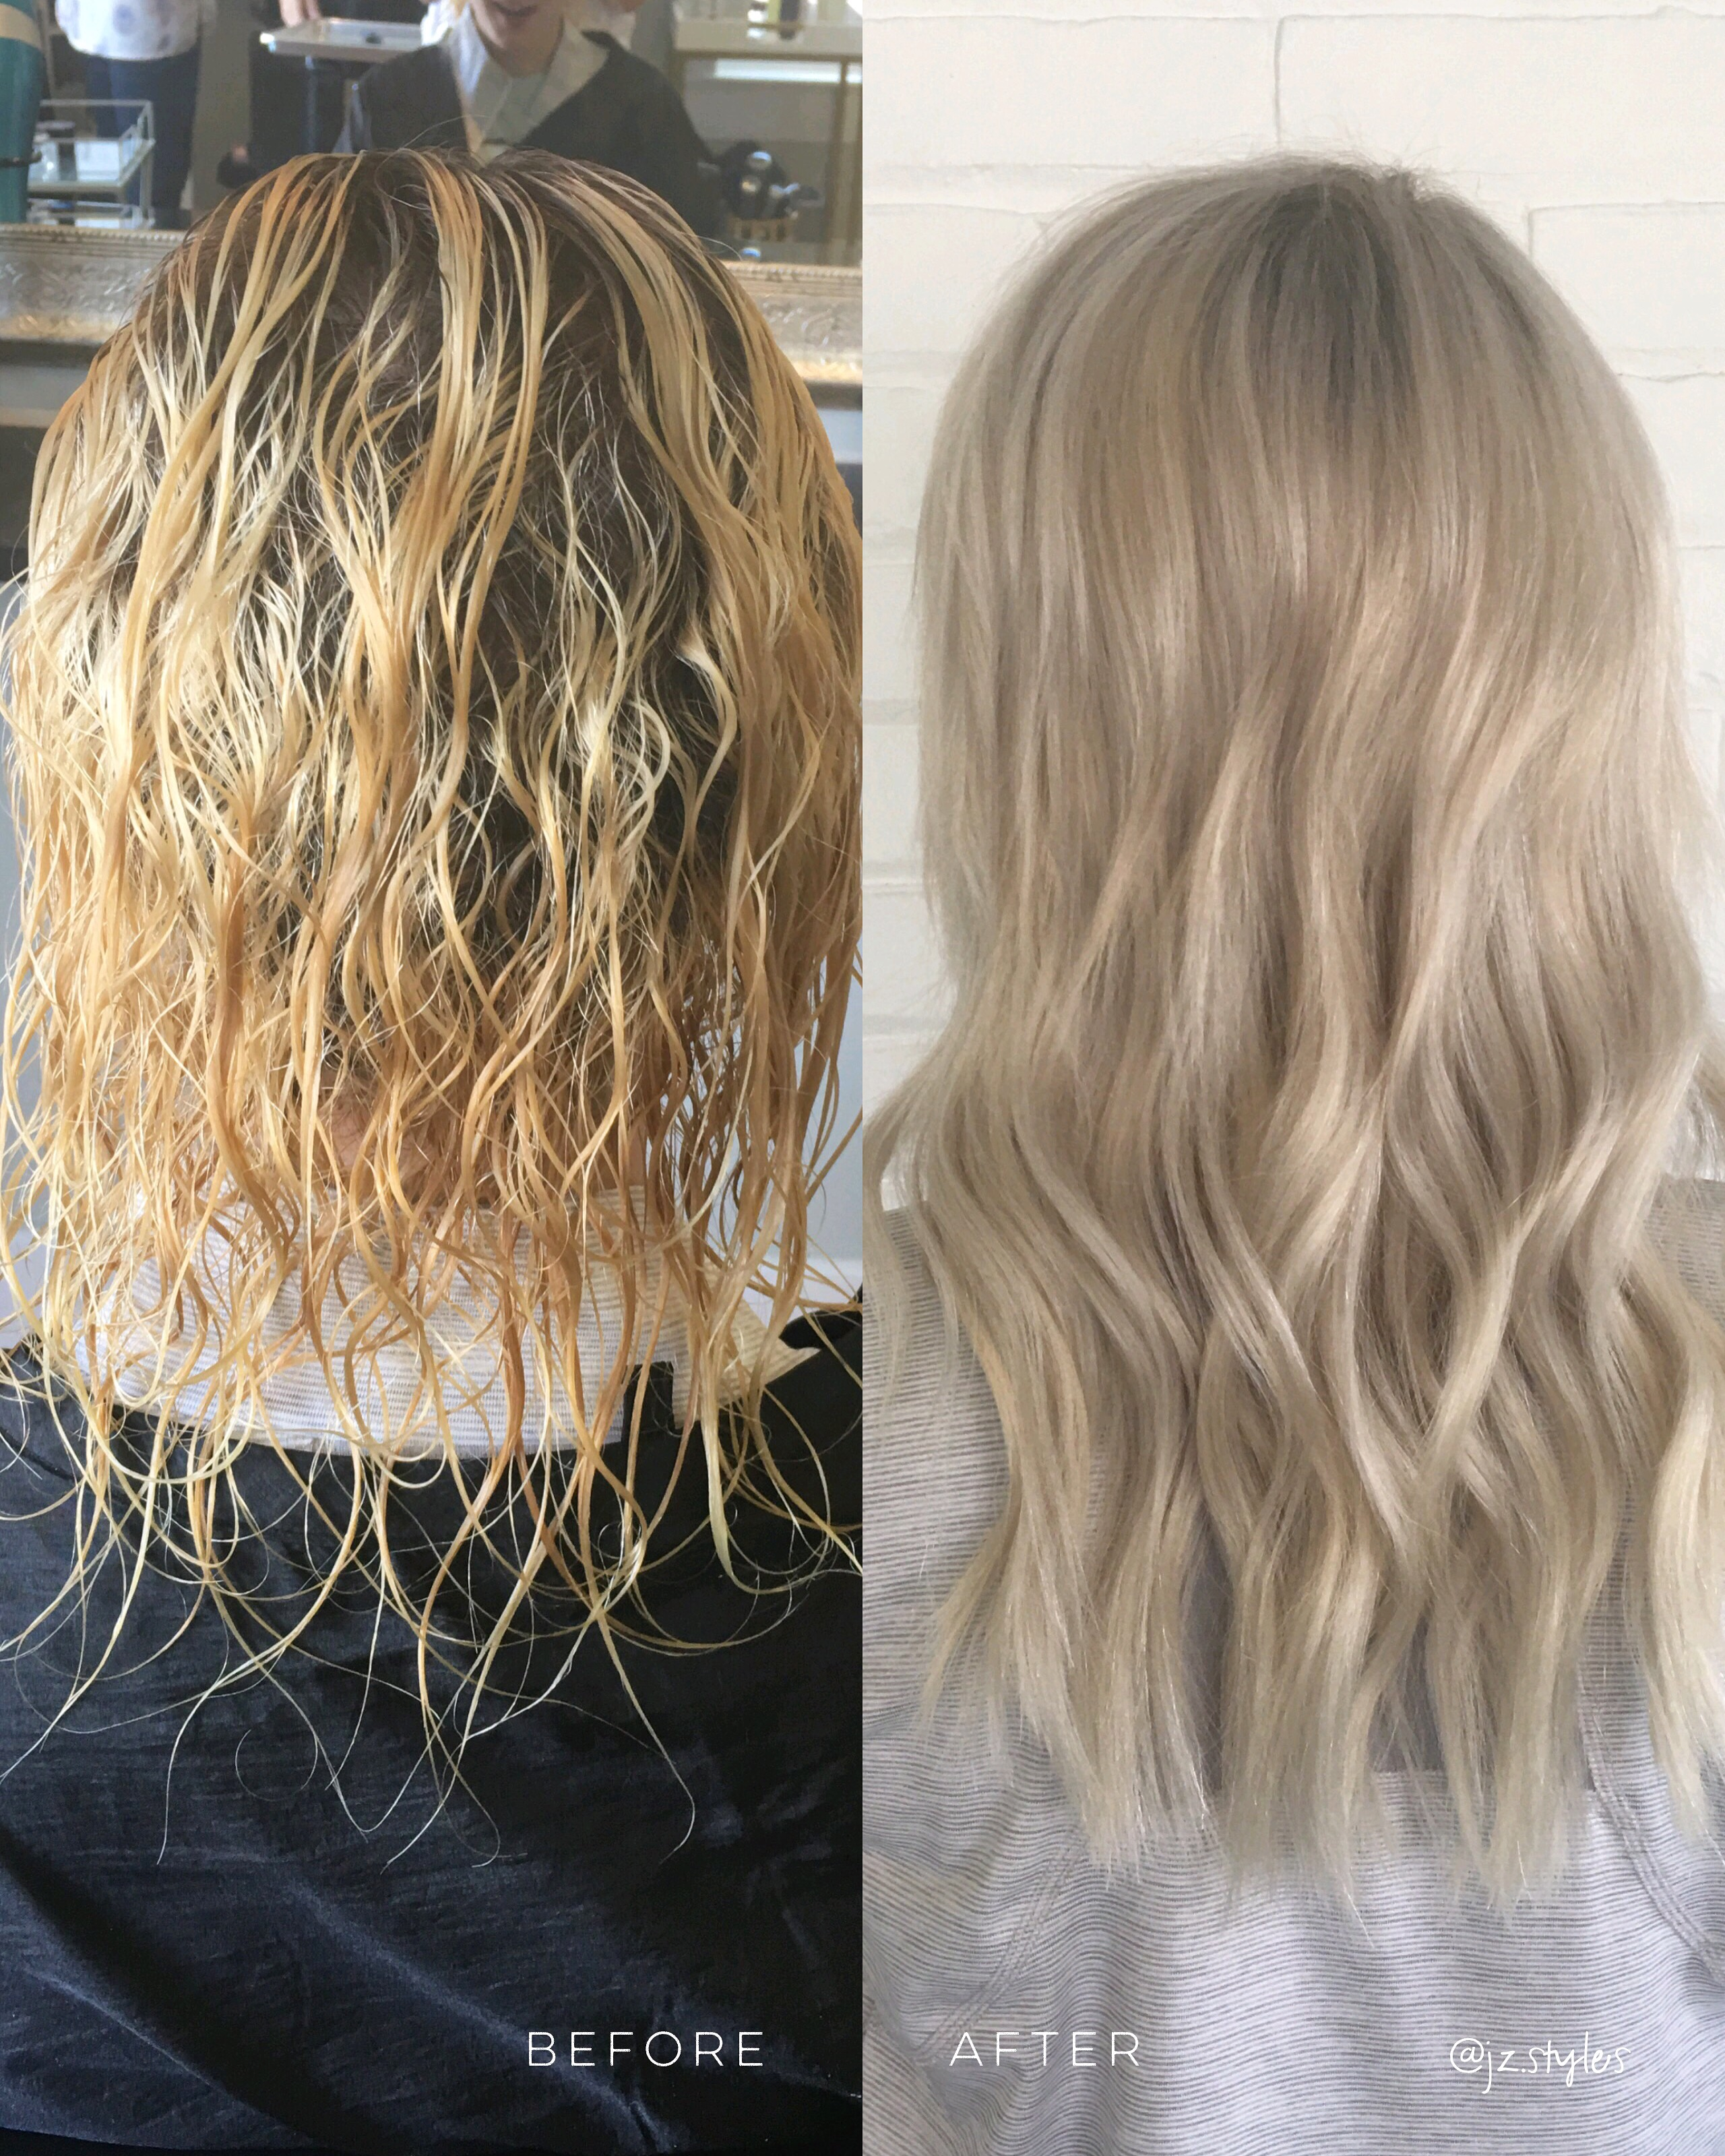 Makeover: Addressing Tone and Texture For The Perfect Blonde